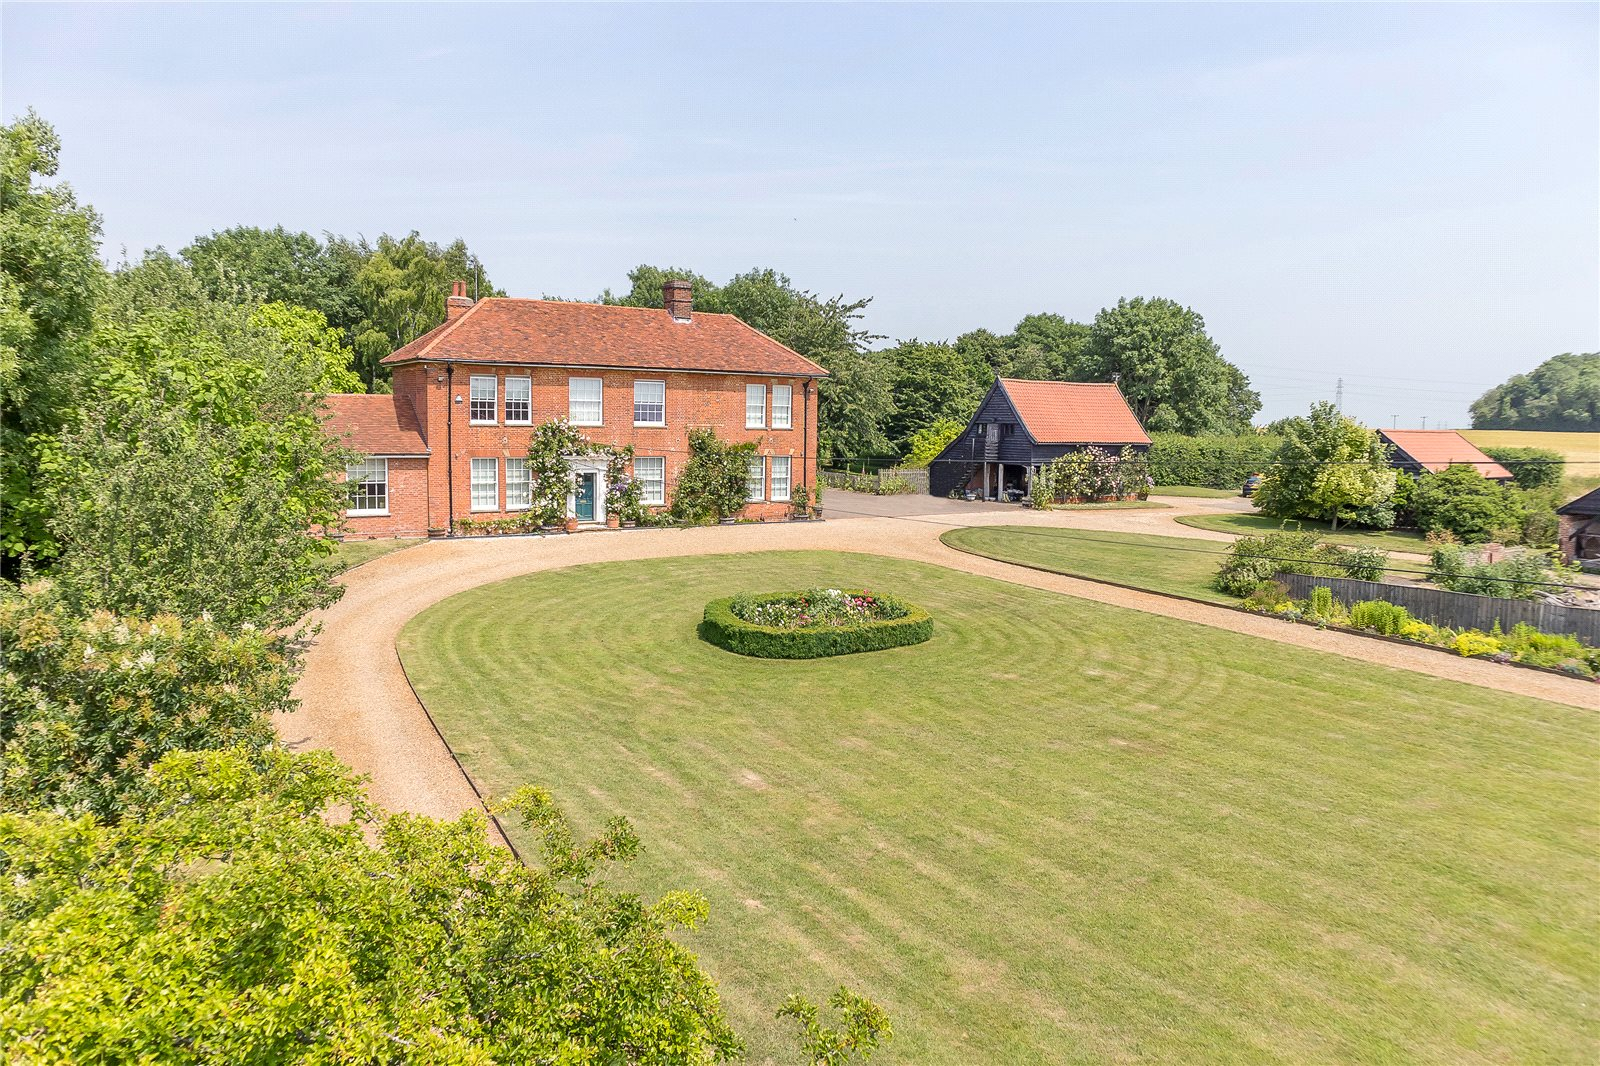 Single Family Home for Sale at Burstall, Ipswich, Suffolk, IP8 Ipswich, England